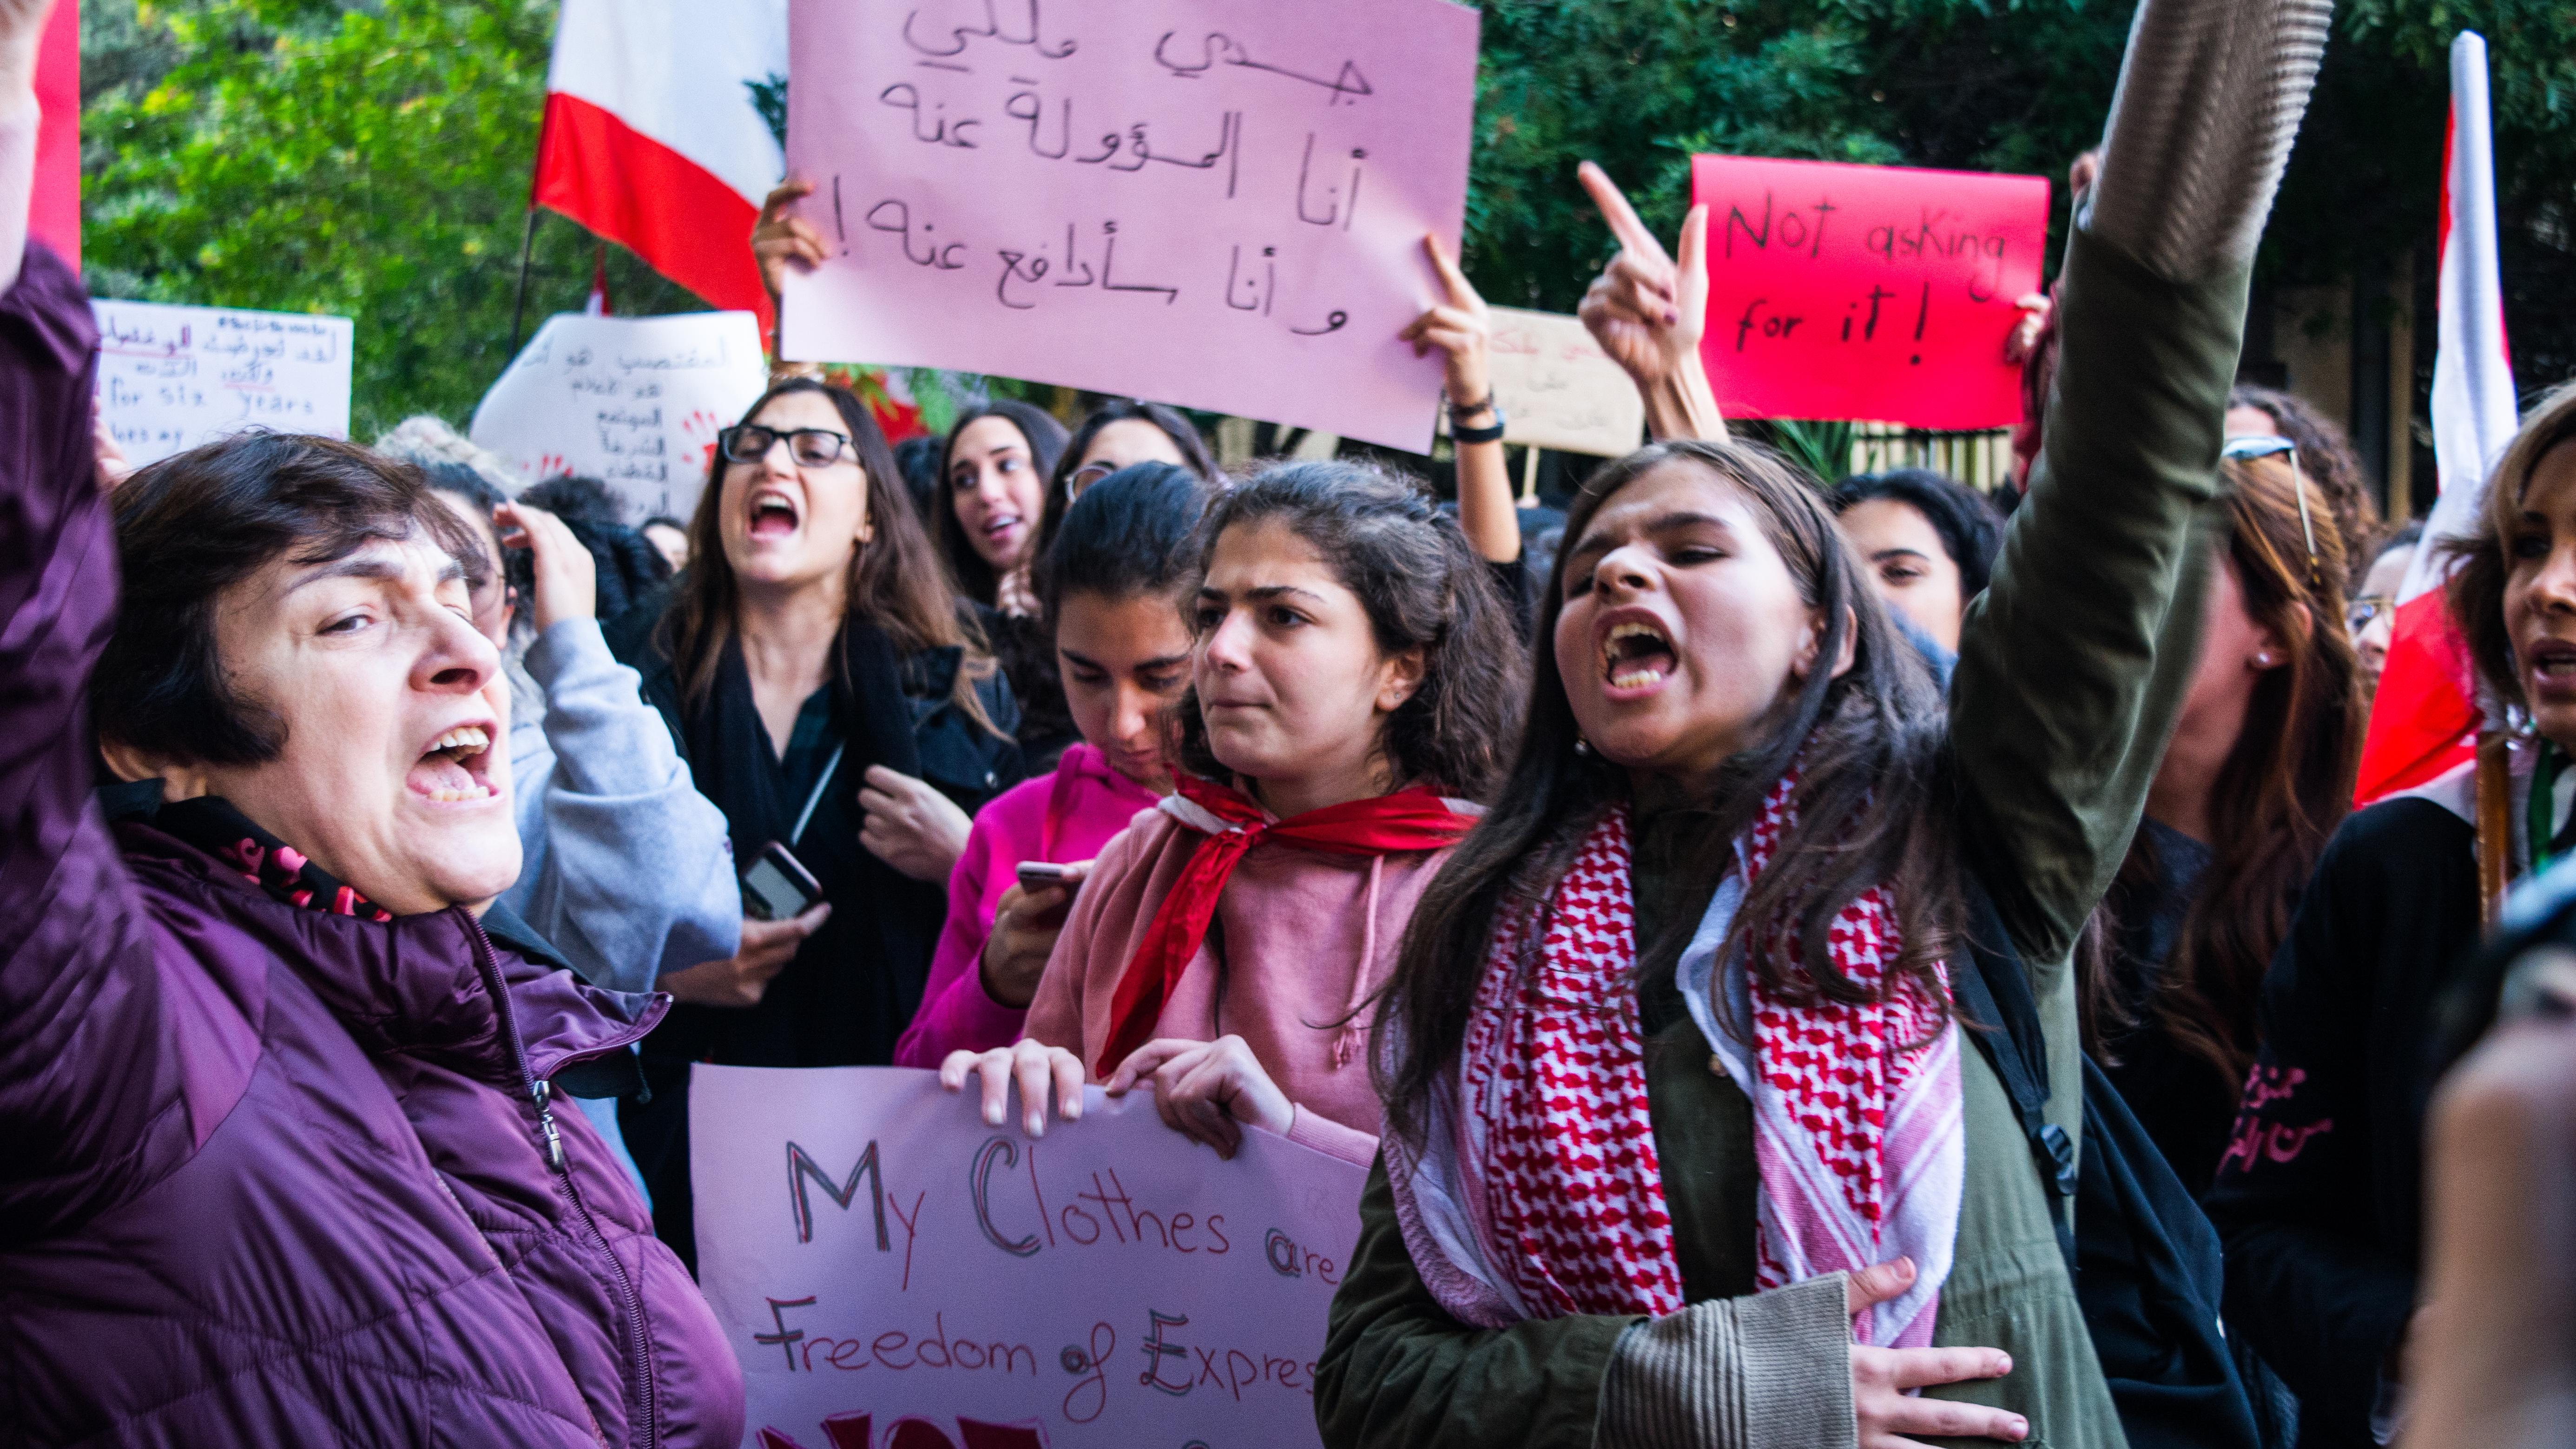 Hundreds march in Beirut against sexual violence and harassment. December 7, 2019. (Eleonora Gatto/The Public Source)